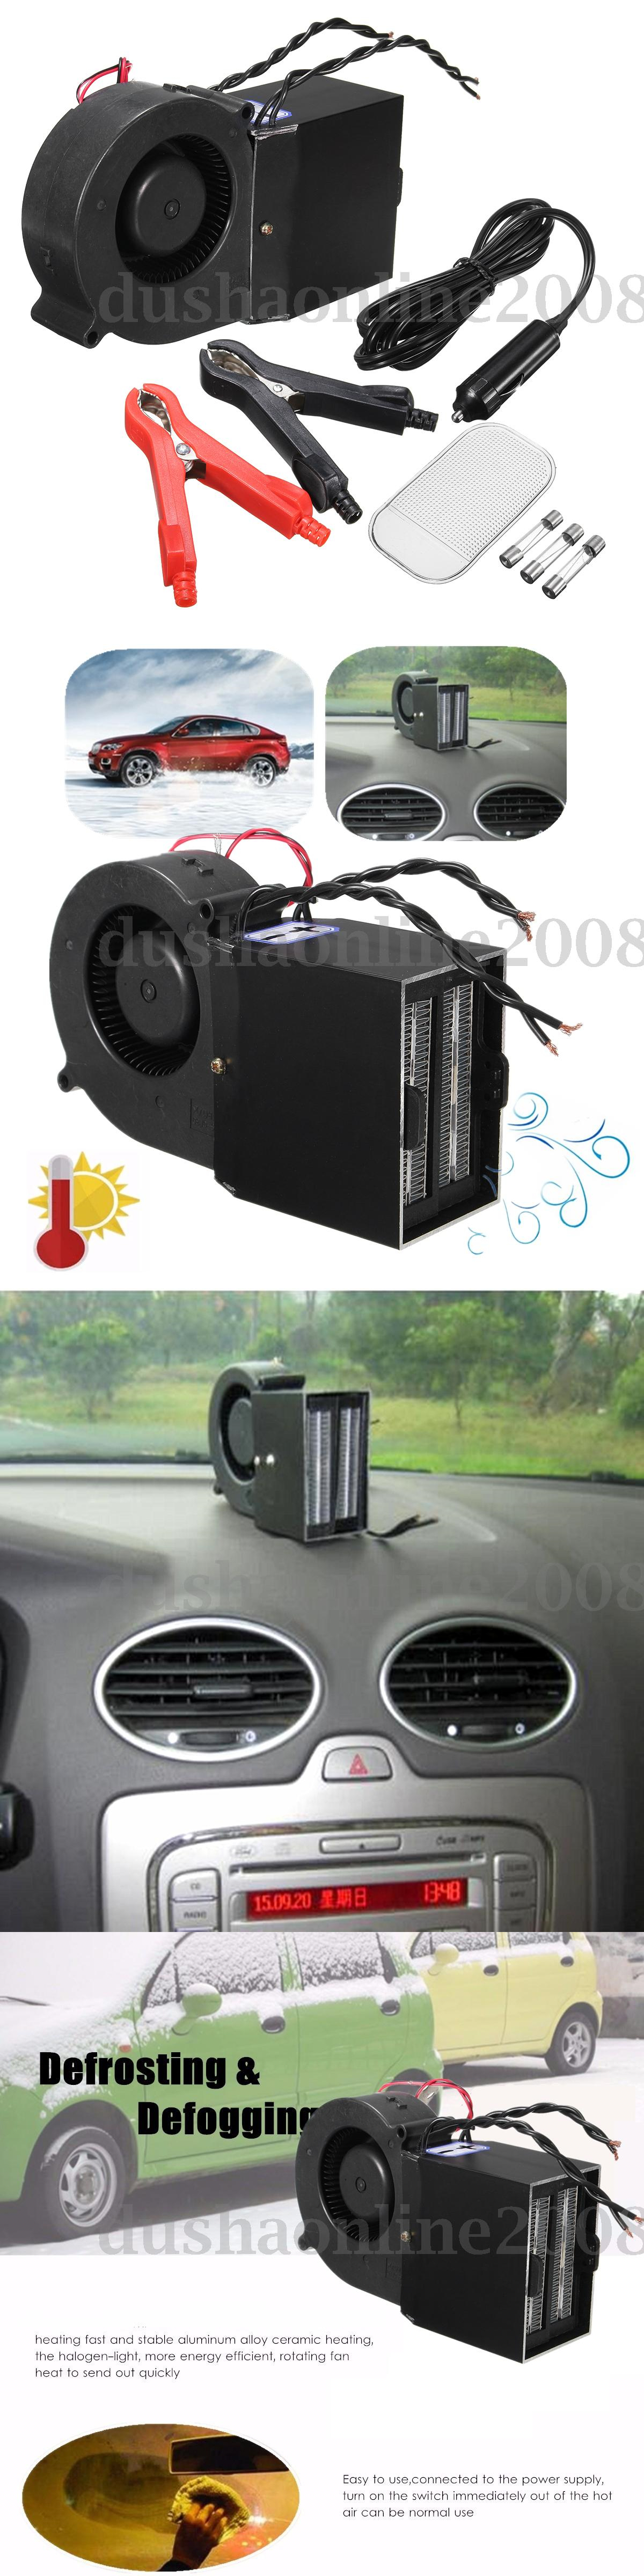 12 Volt Portable Appliances 300w 500w Adjustable Ptc Safe Car Heating Heater Hot Fan Defroster Demister 12v Buy It Now Only 30 5 Heater Fan Hot Fan Portable